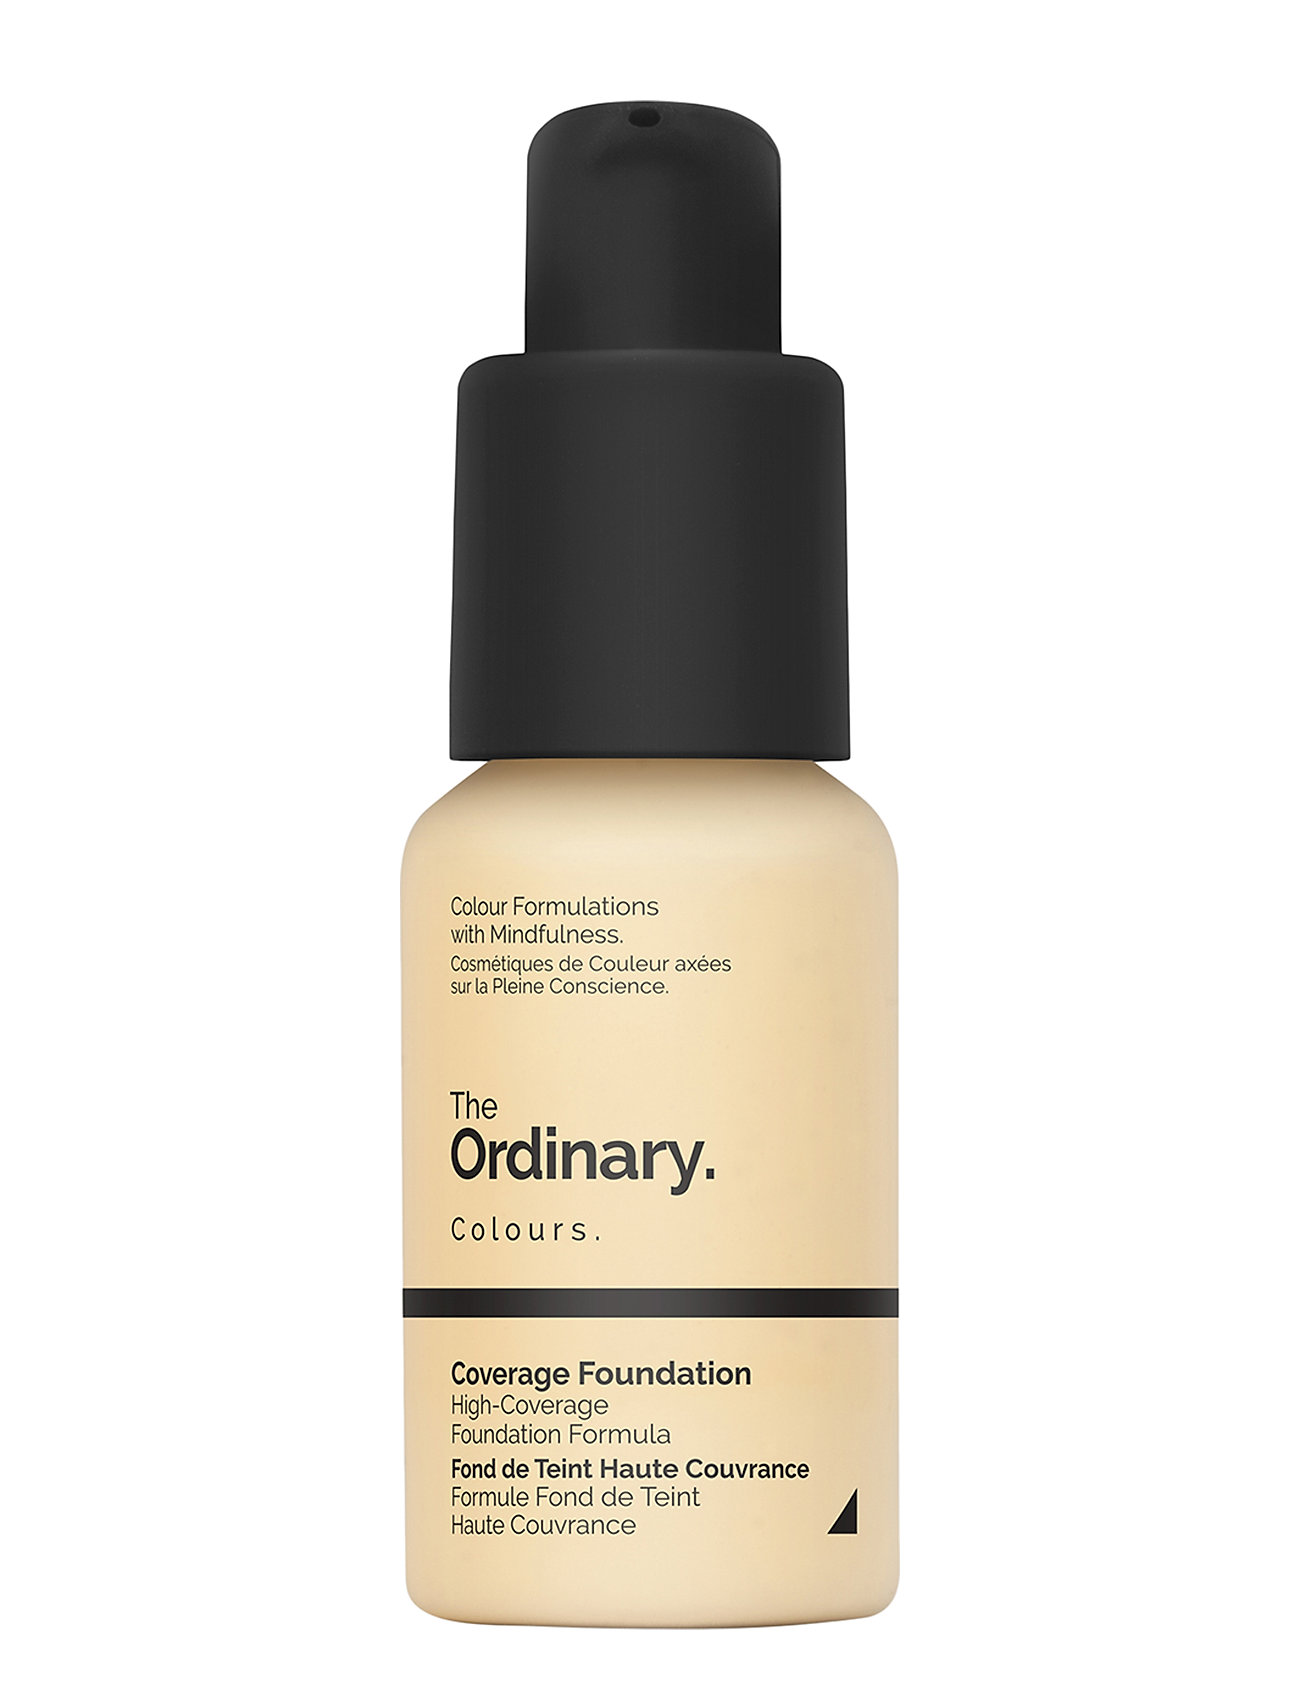 Image of Coverage Foundation 1.2 Yg Light Yellow Gold Foundation Makeup The Ordinary (3196660359)